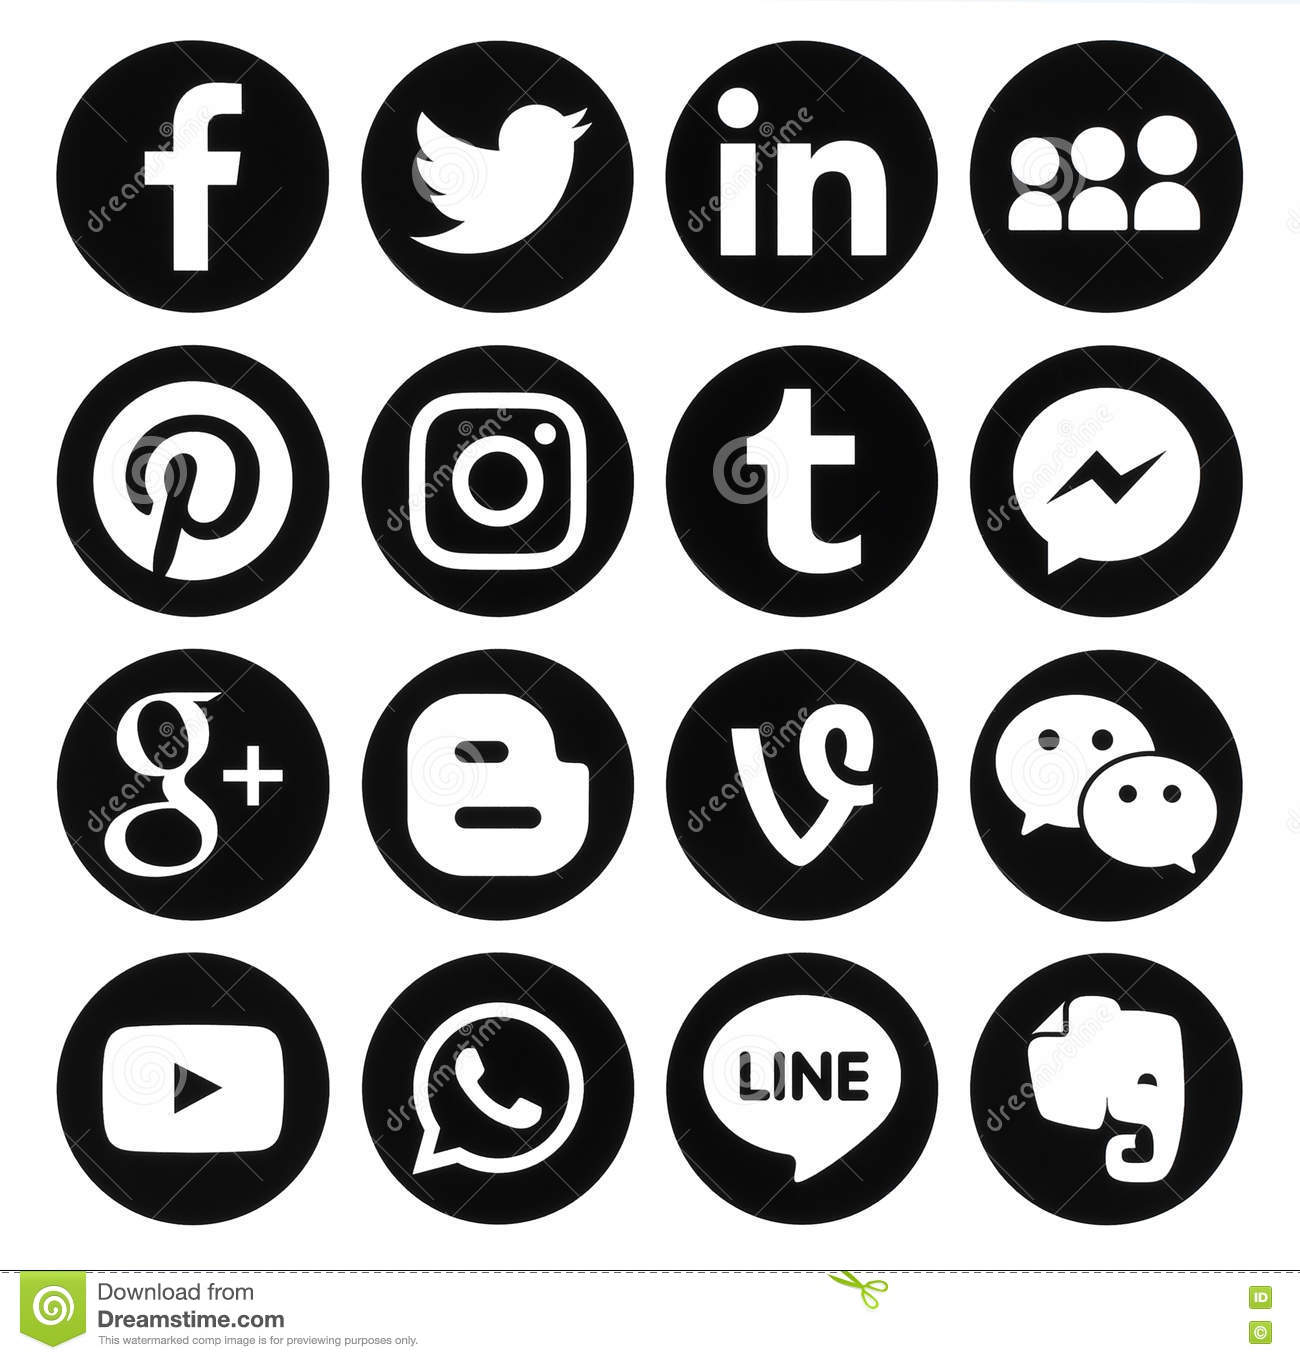 social media icons black and white. editorial stock photo. download collection of popular black round social media icons and white a